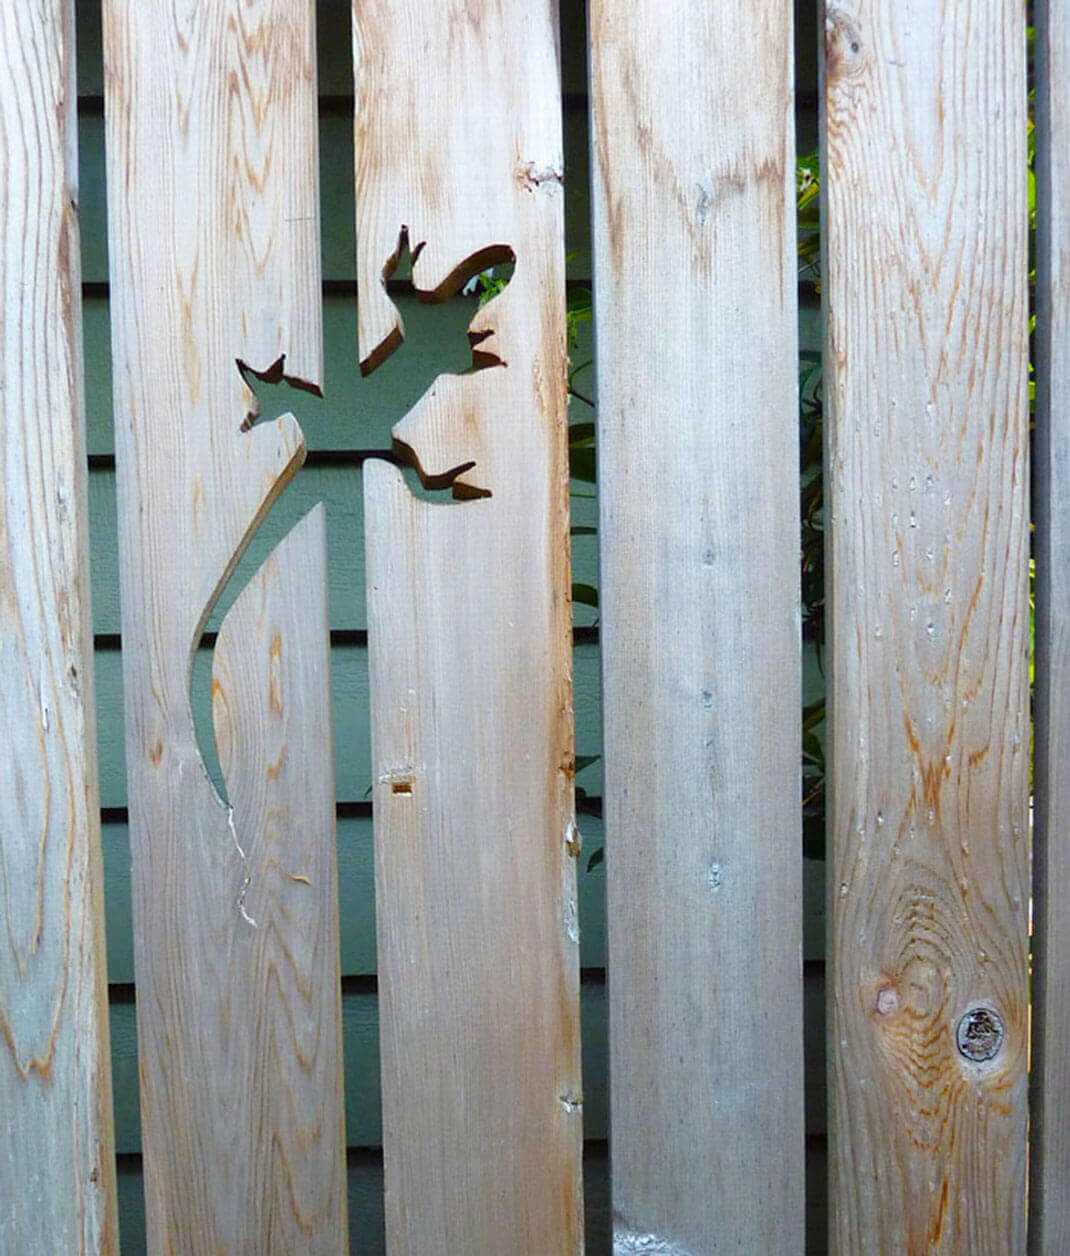 Adorable Lizard Cut into the Fence